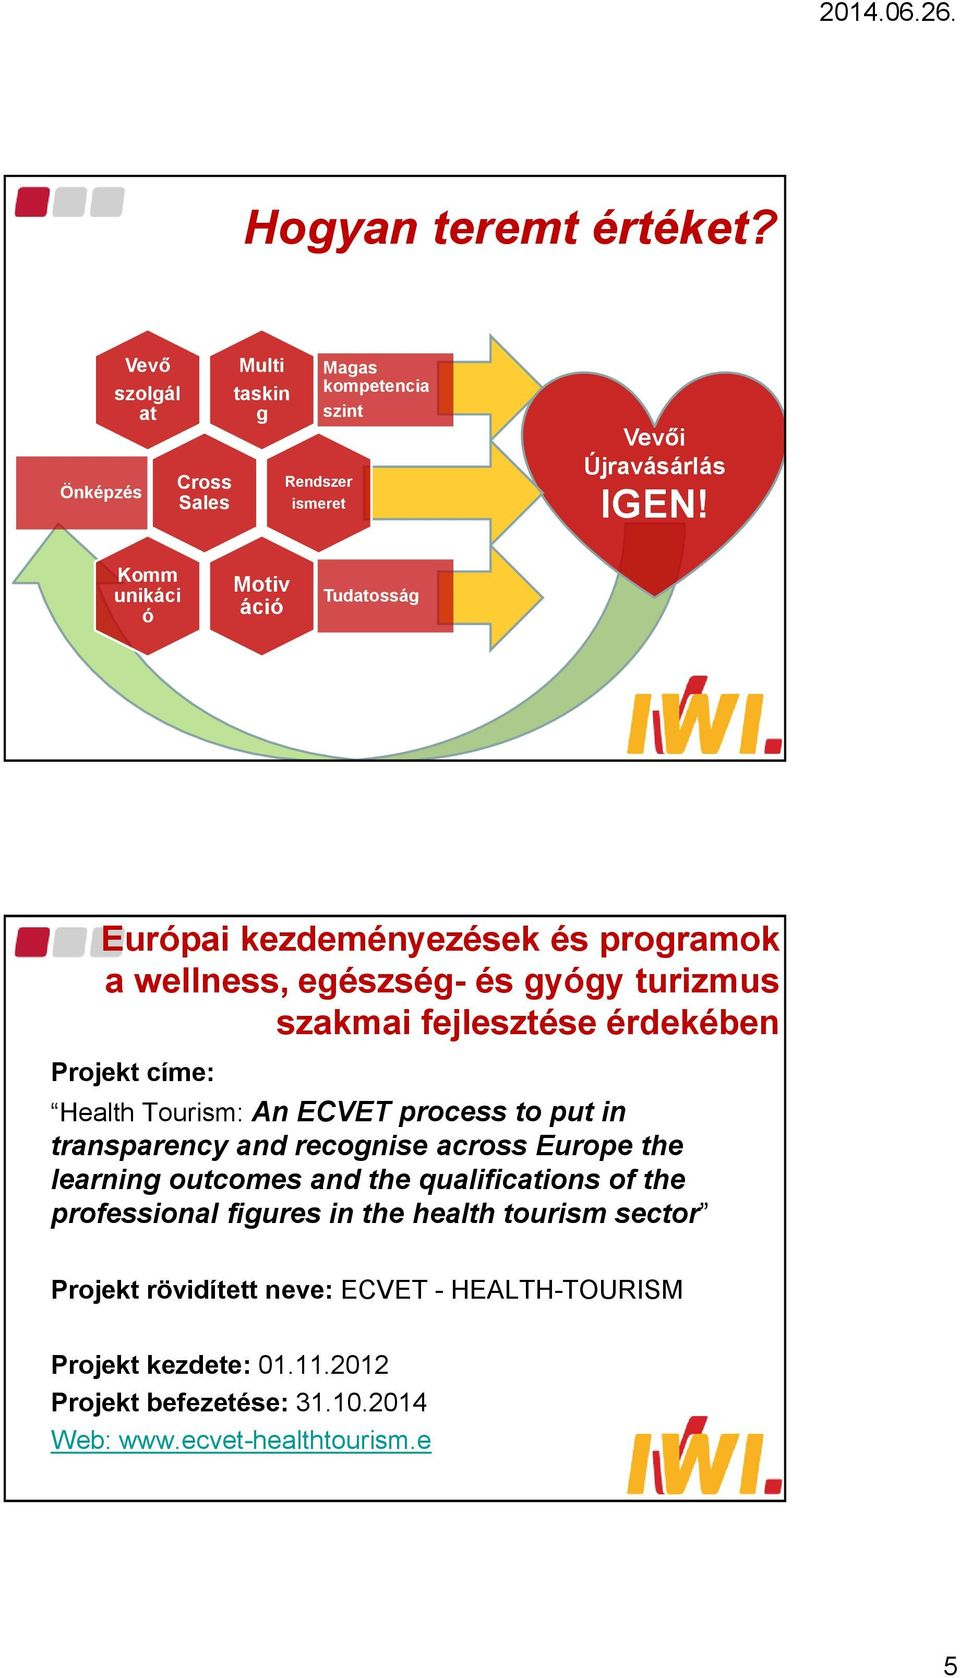 címe: Health Tourism: An ECVET process to put in transparency and recognise across Europe the learning outcomes and the qualifications of the professional